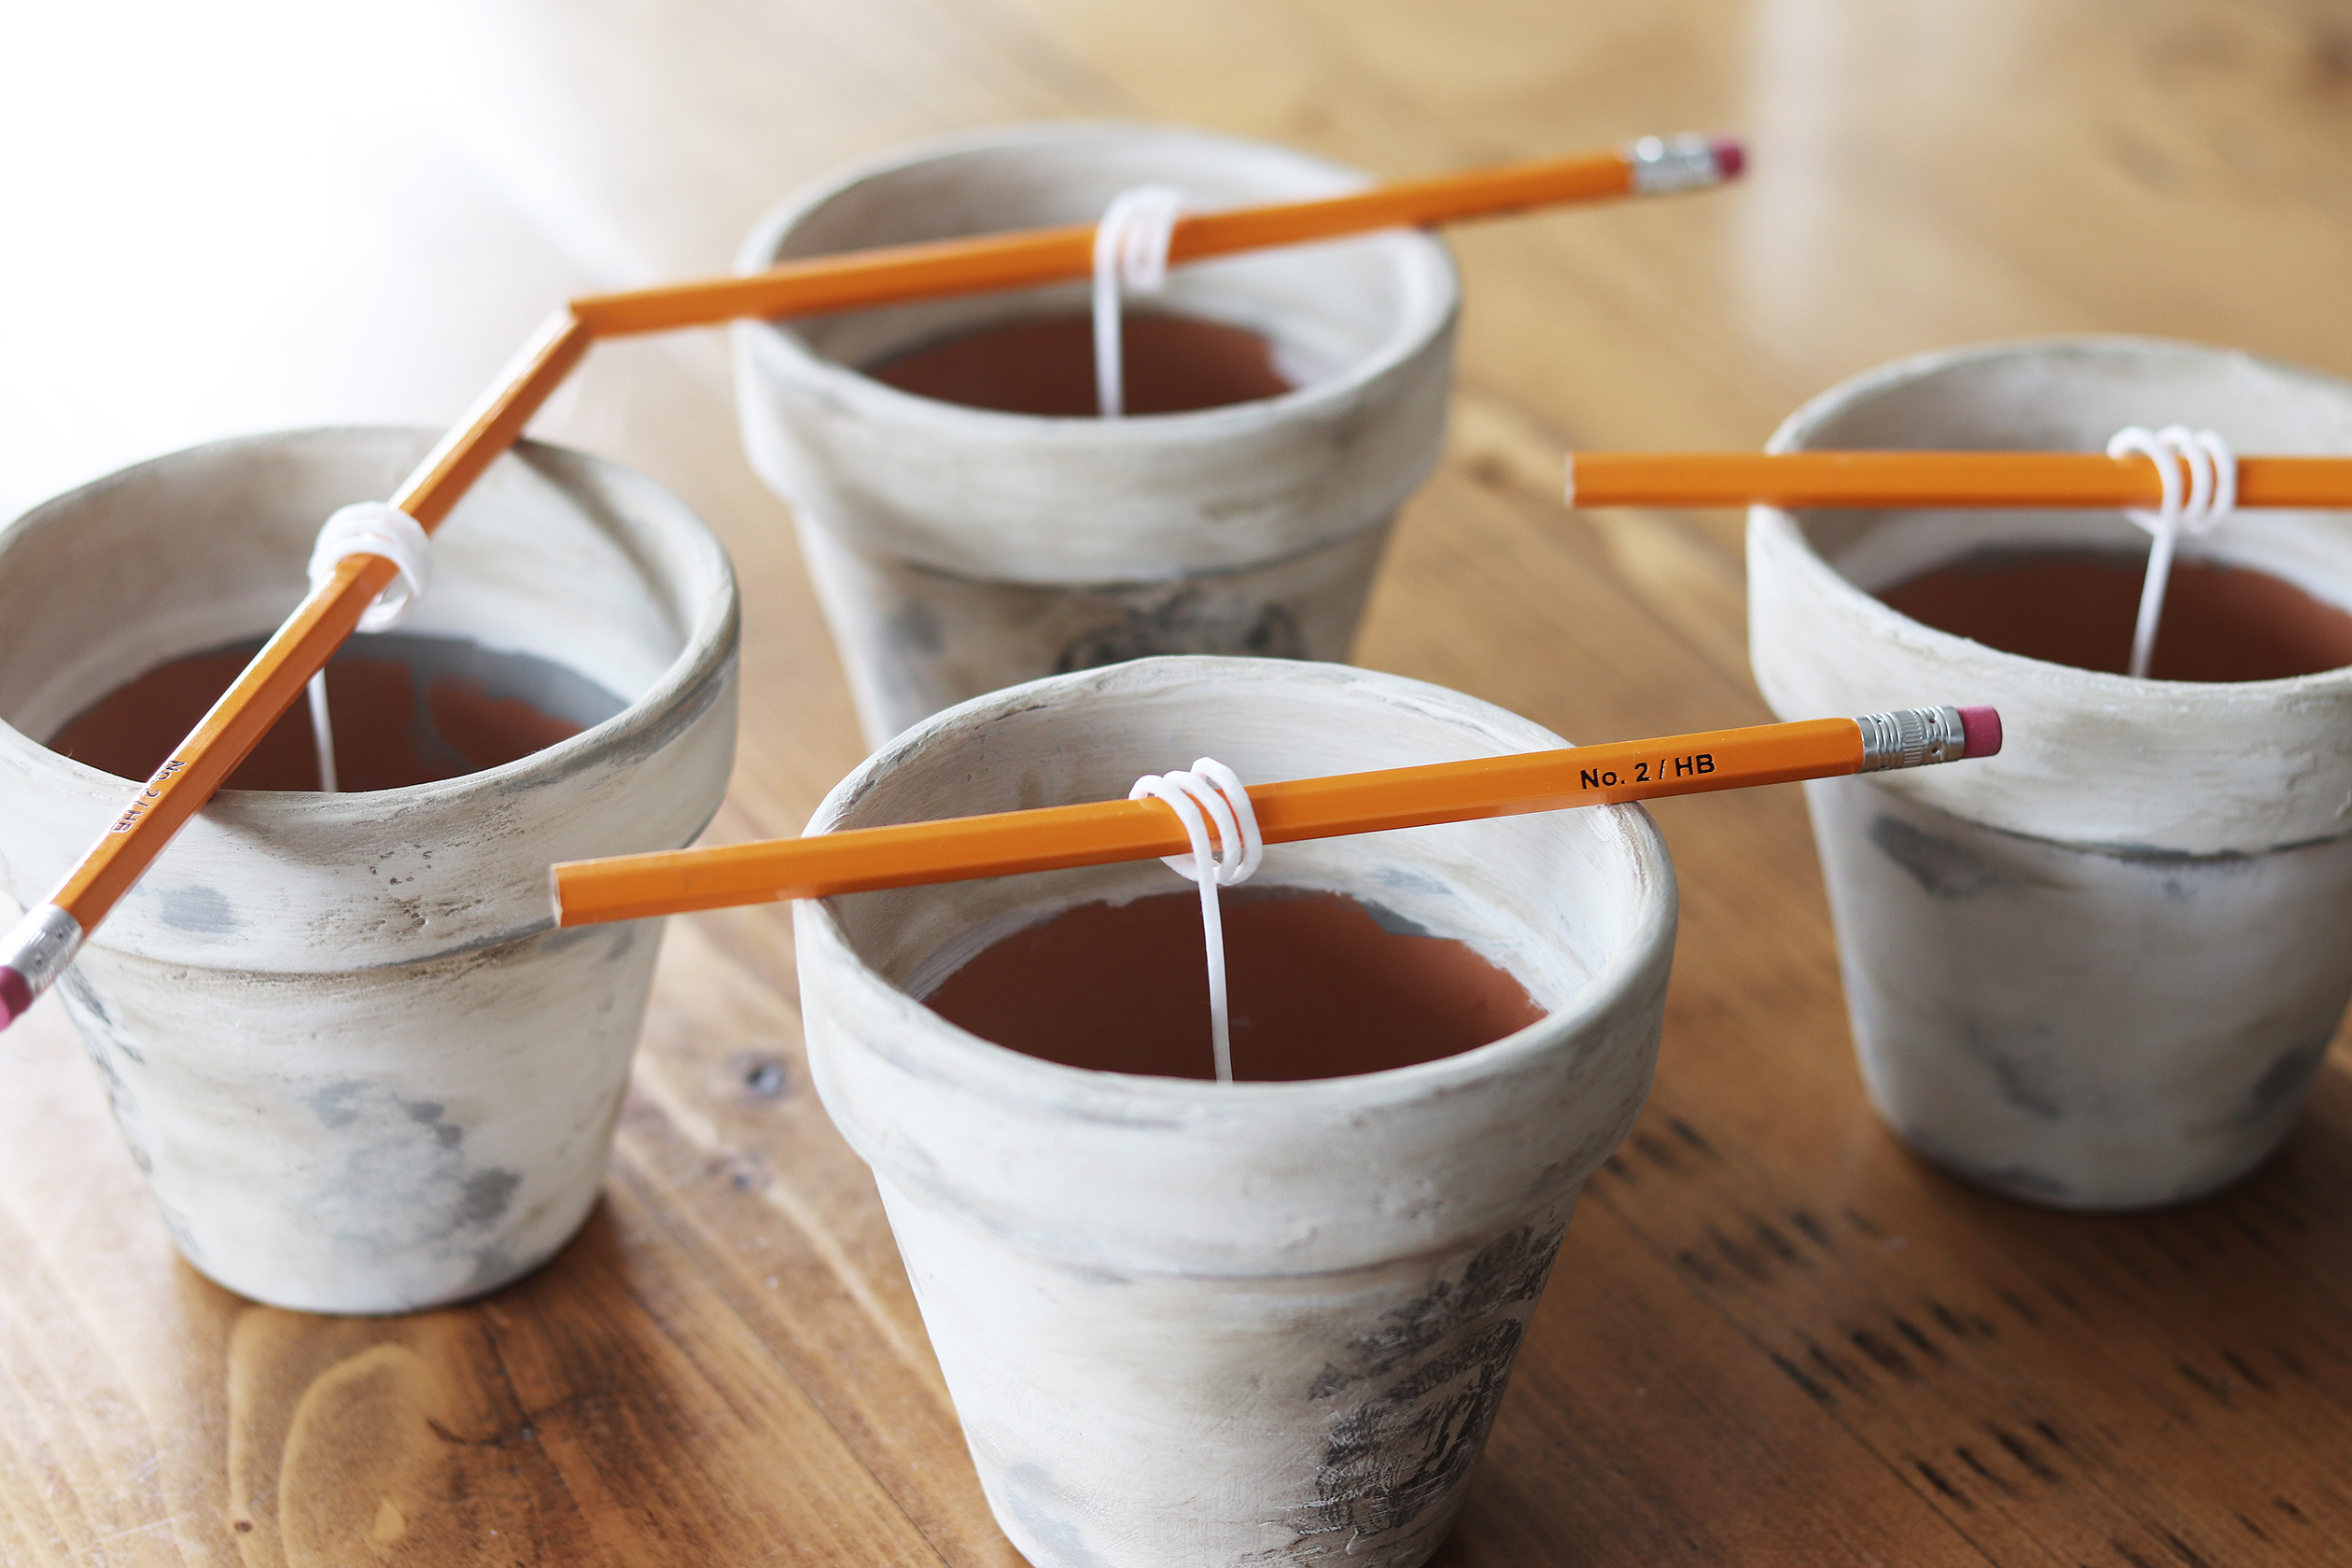 Boroughfare Home French Inspired Candles with Wicks Coiled on Pencils